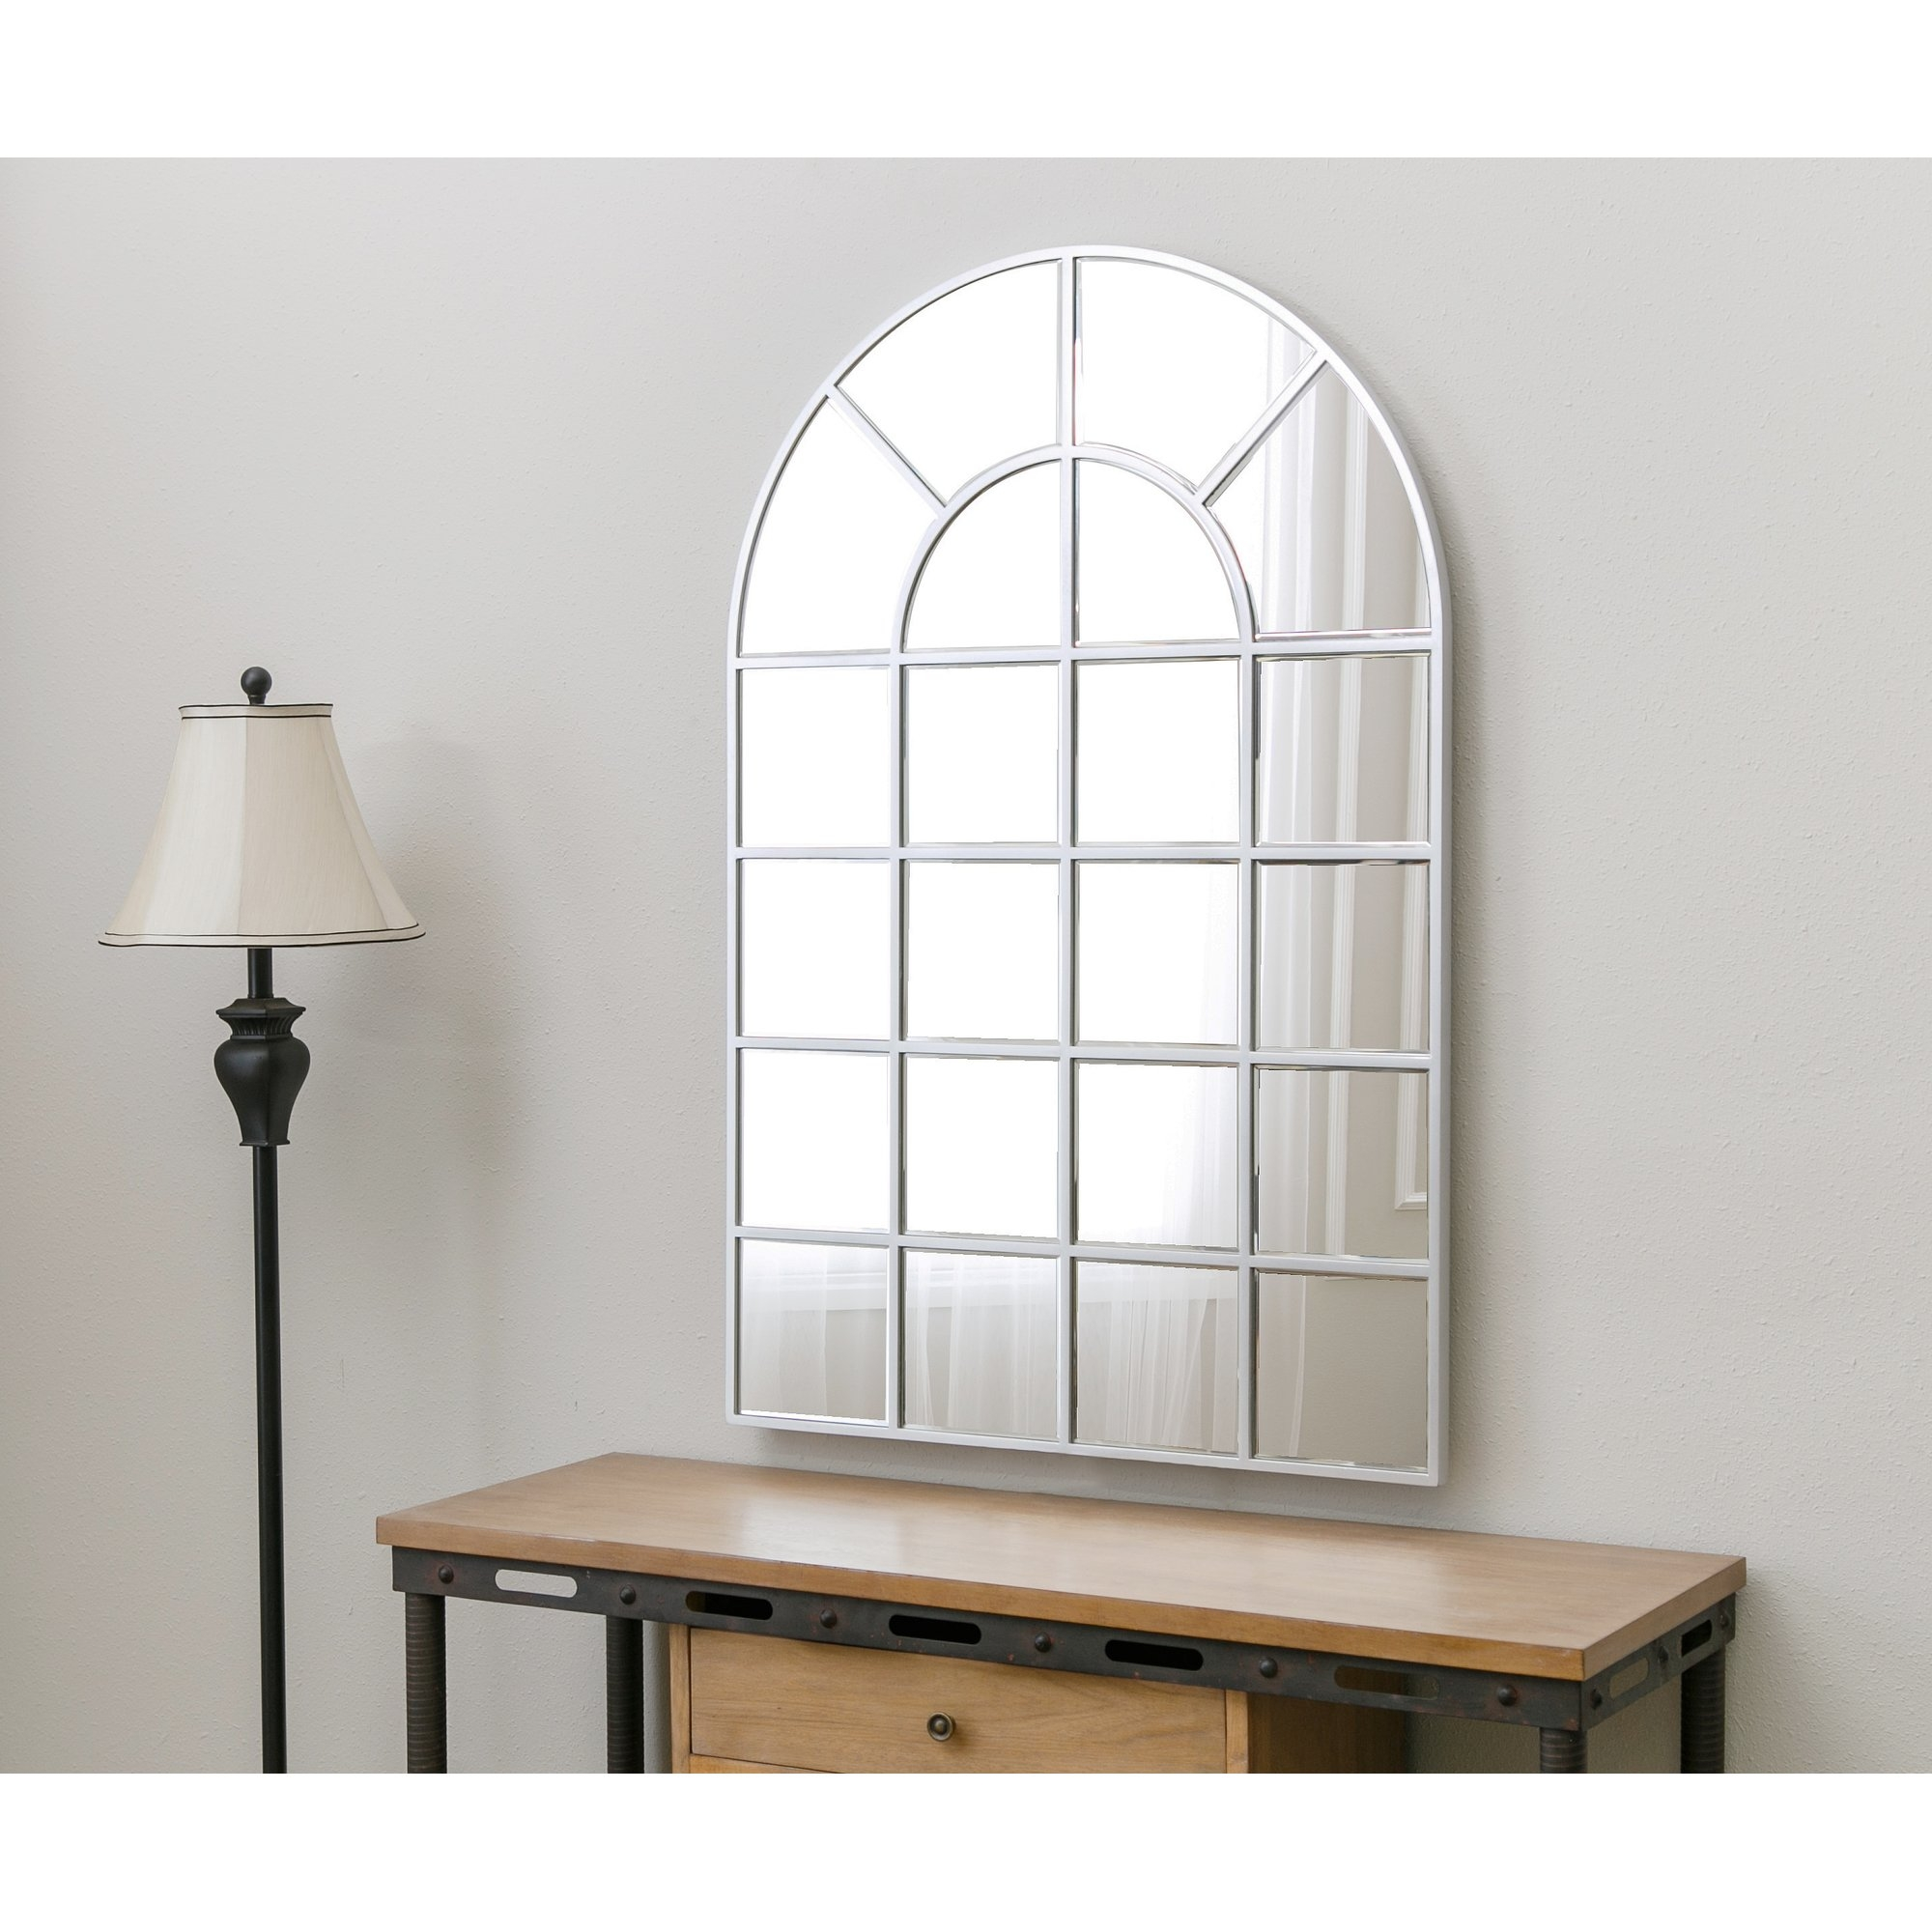 Red Barrel Studio Arched Wall Mirror Reviews Wayfair In Arched Wall Mirror (Image 15 of 15)